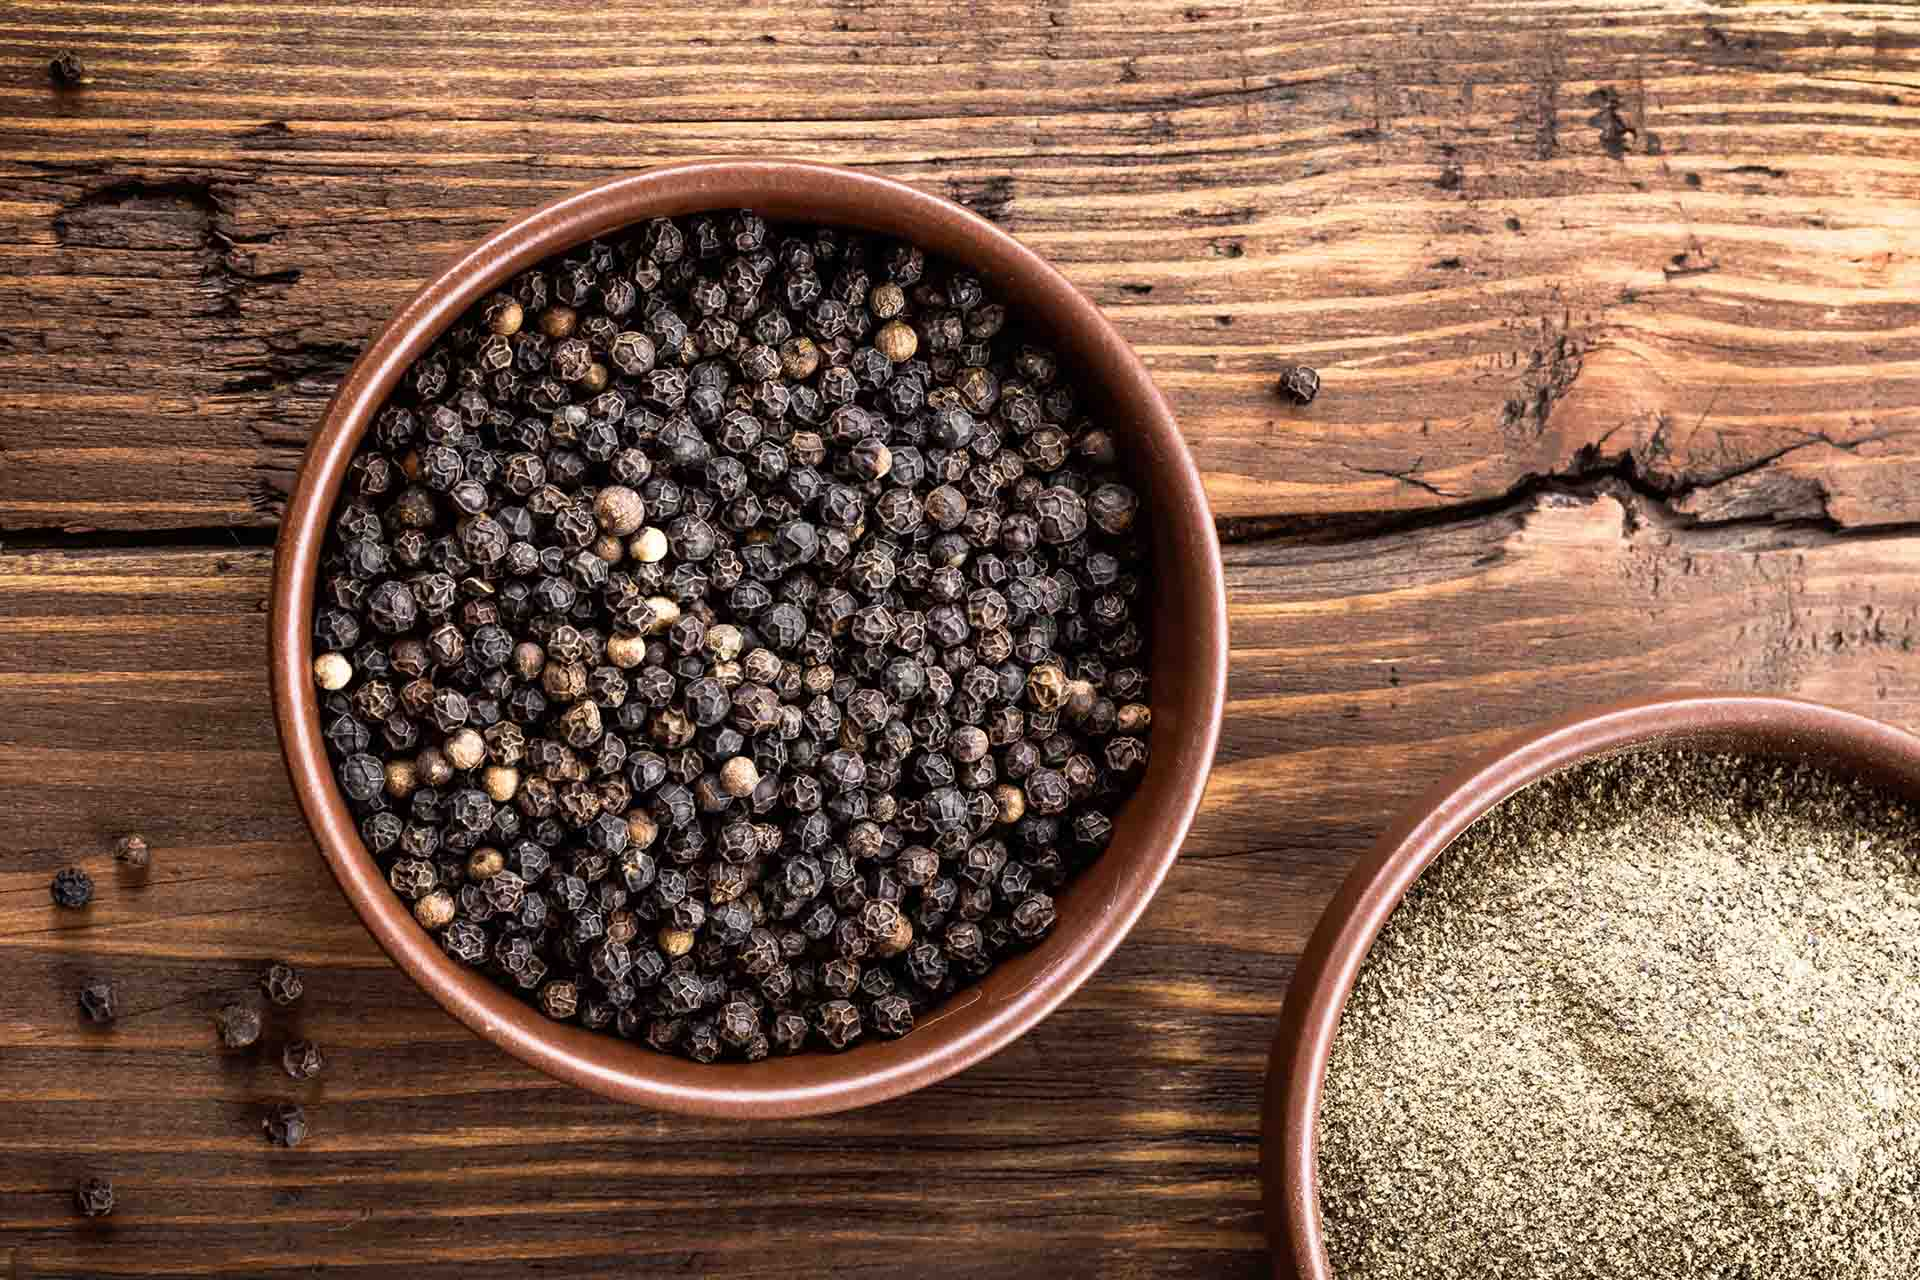 Bowl of black peppercorns sitting on a wooden table.